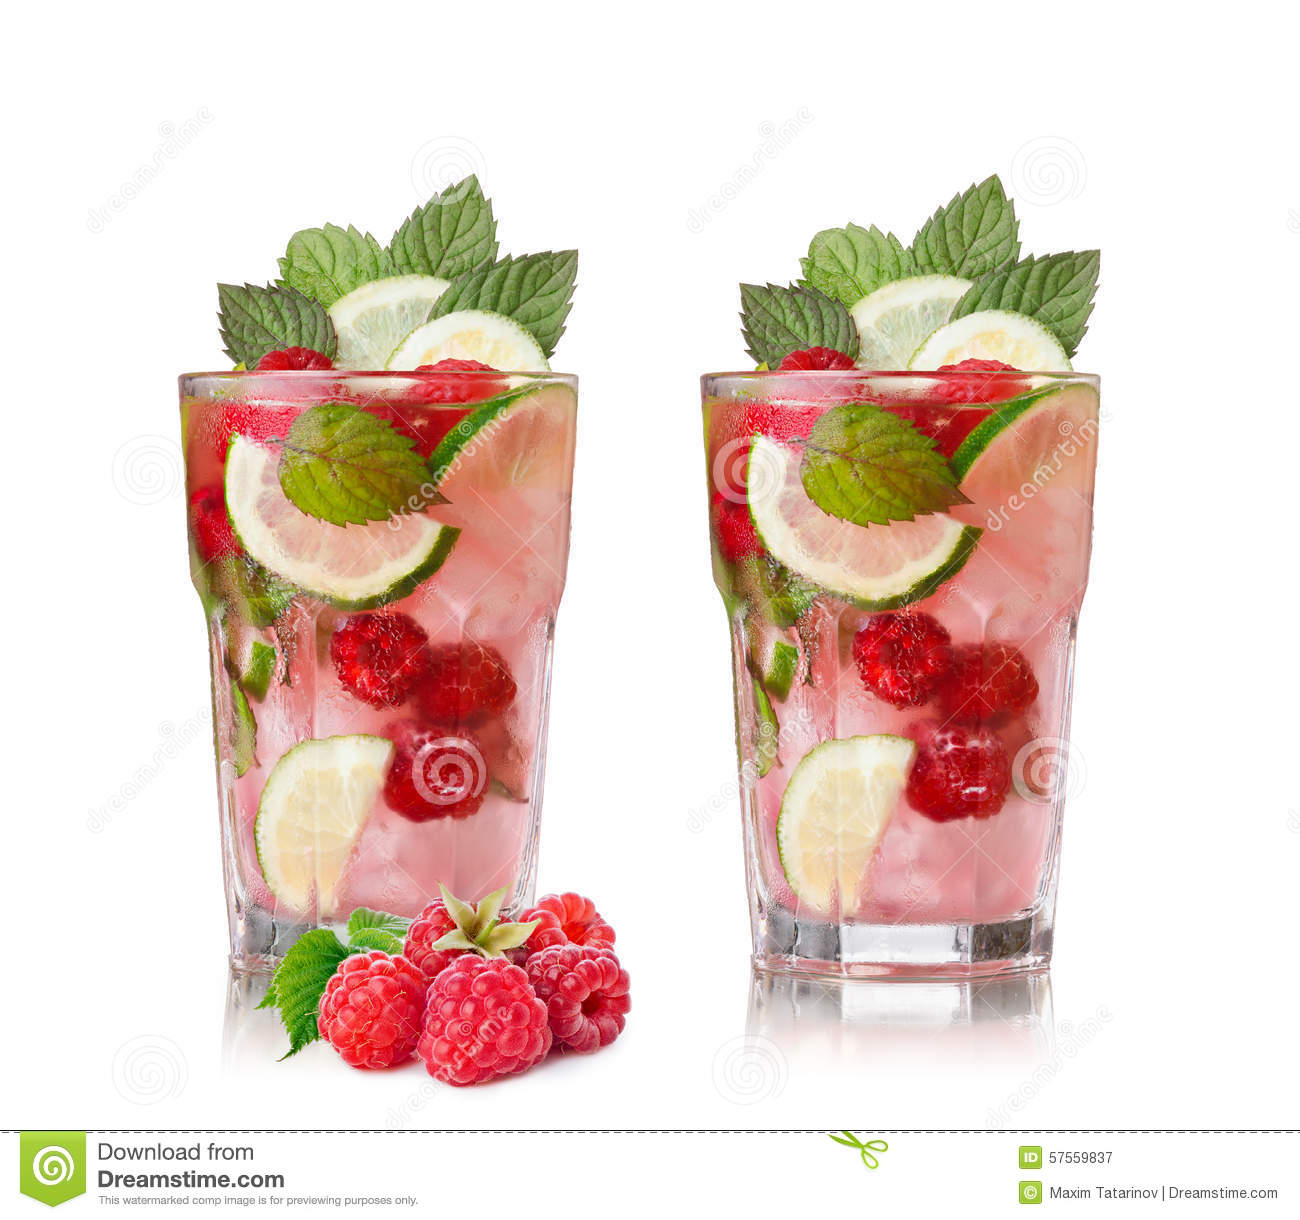 Mojito with Cascadian White Raspberry Balsamic